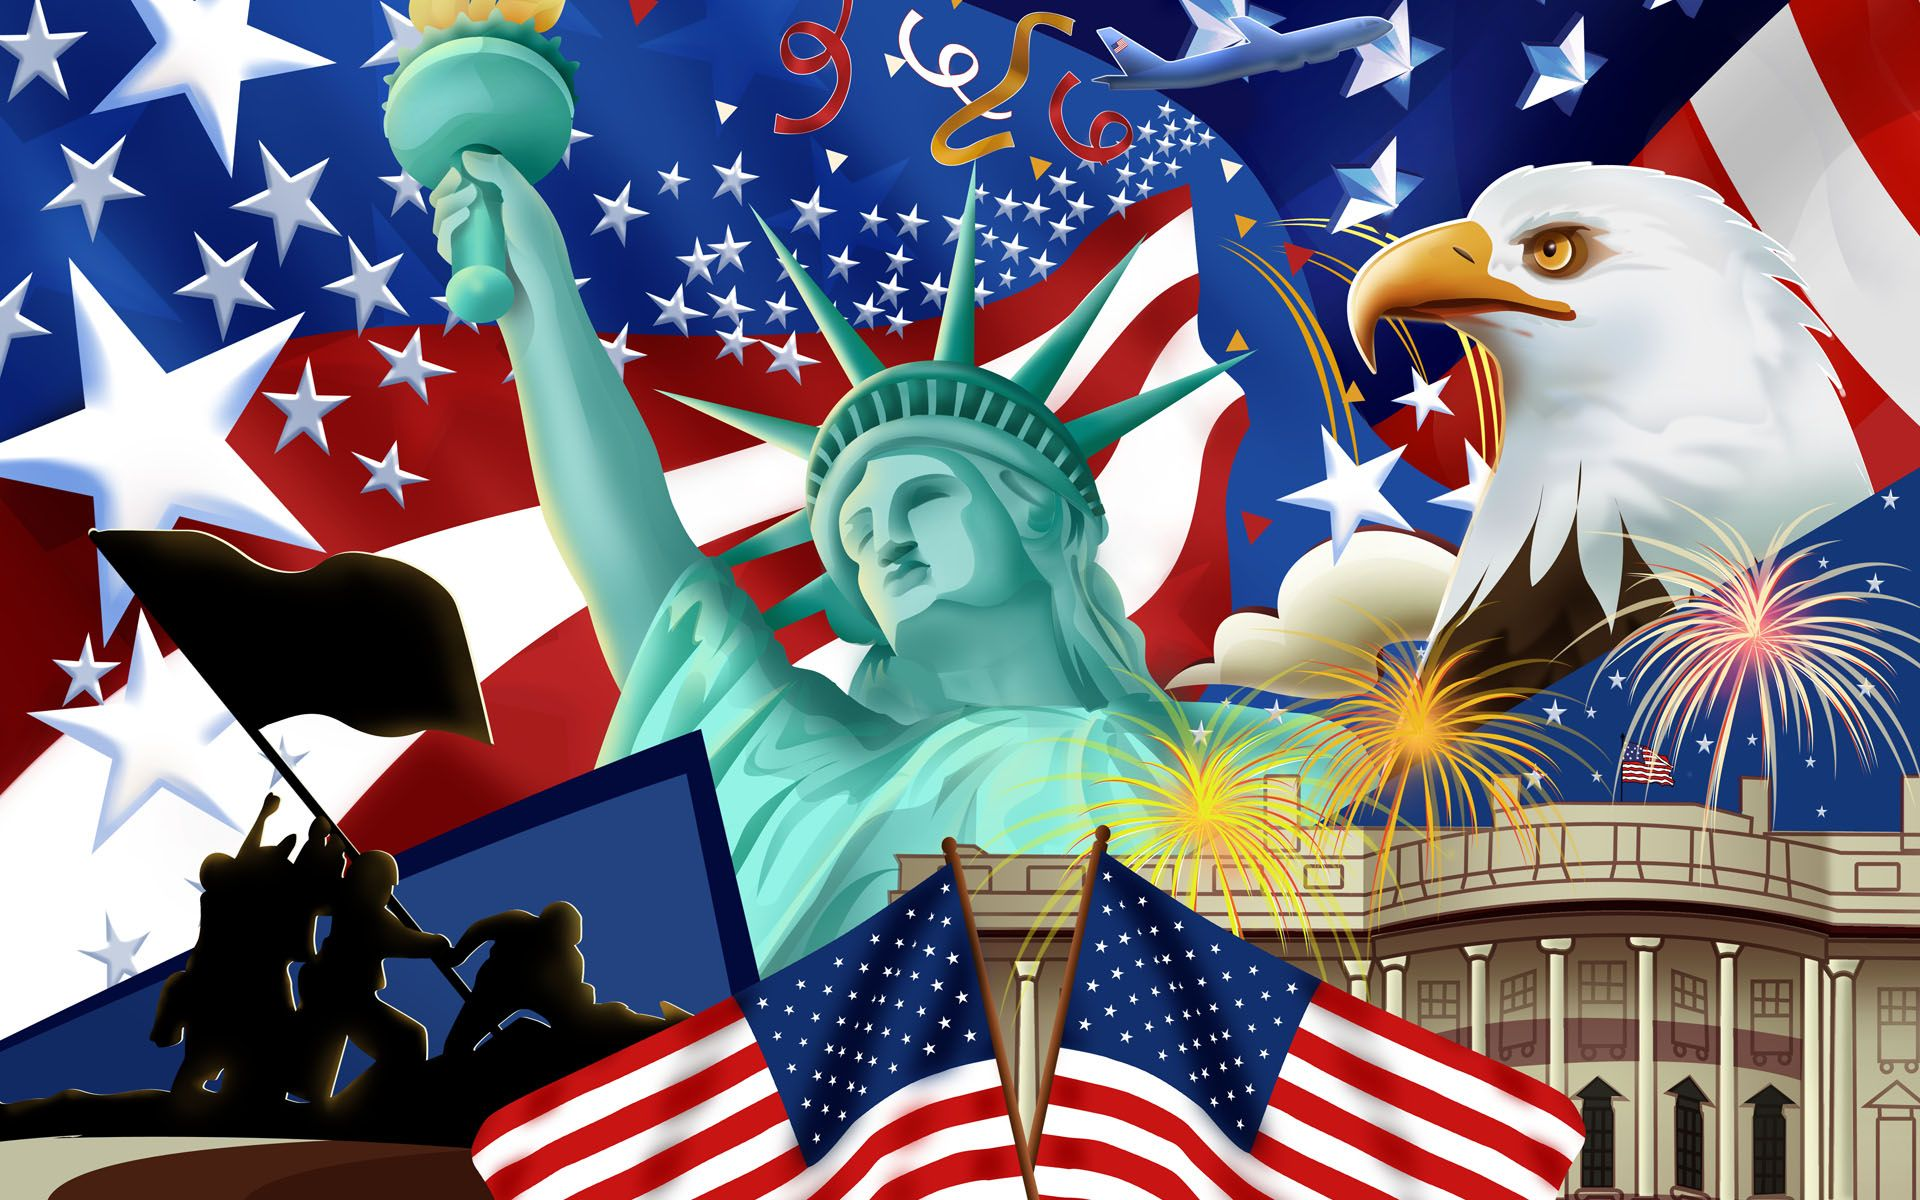 United States Of America Wallpaper Independence Day Independence Day Wallpaper Happy Memorial Day Independence Day